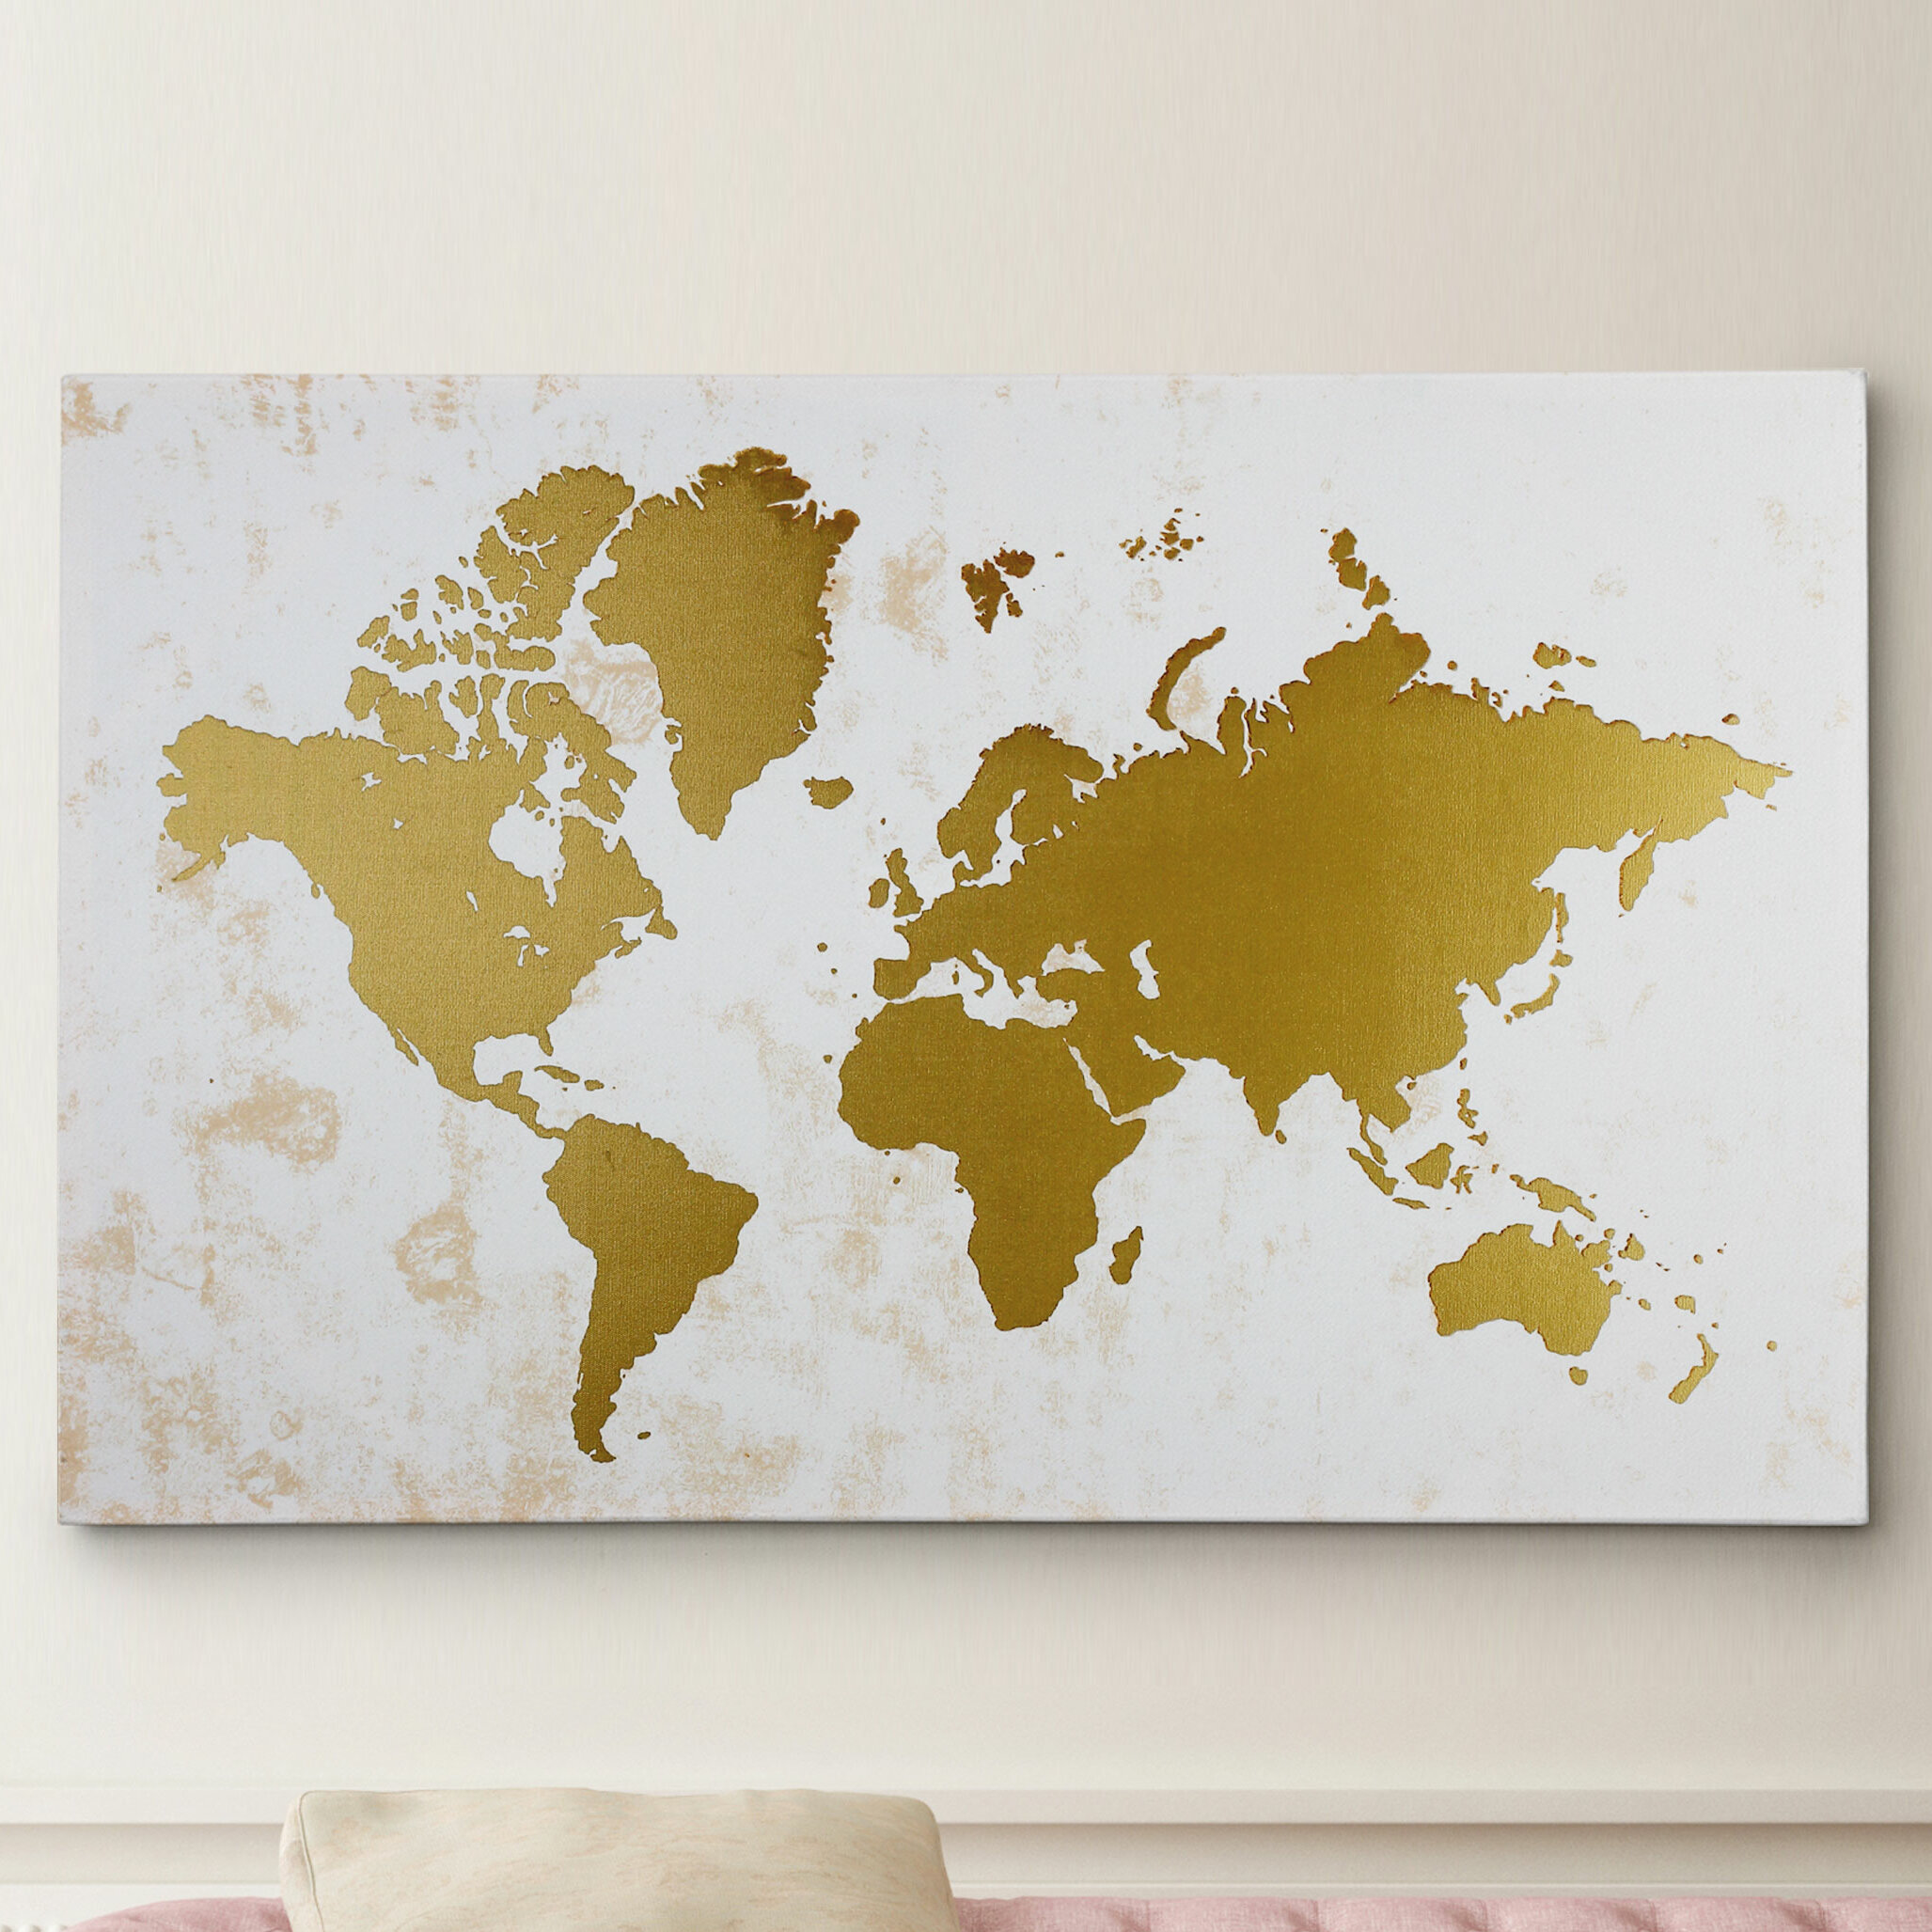 Metallic Wall Art You\'ll Love | Wayfair